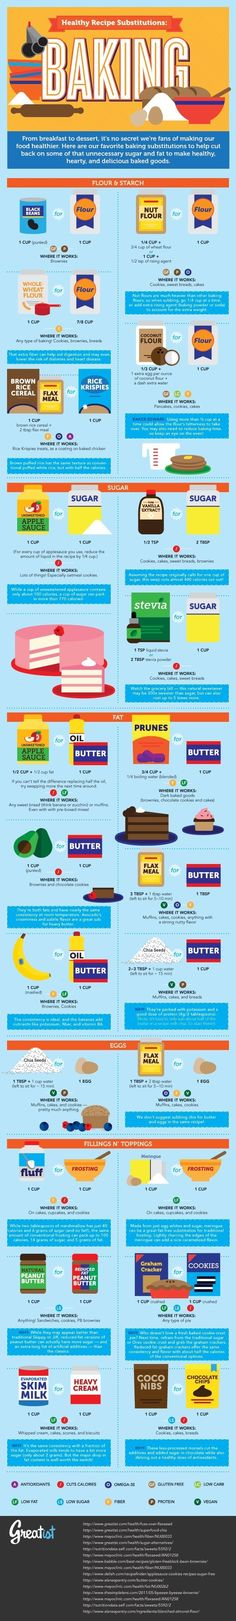 For healthier desserts. | 17 Kitchen Cheat Sheets To Help You Eat Healthier In 2016